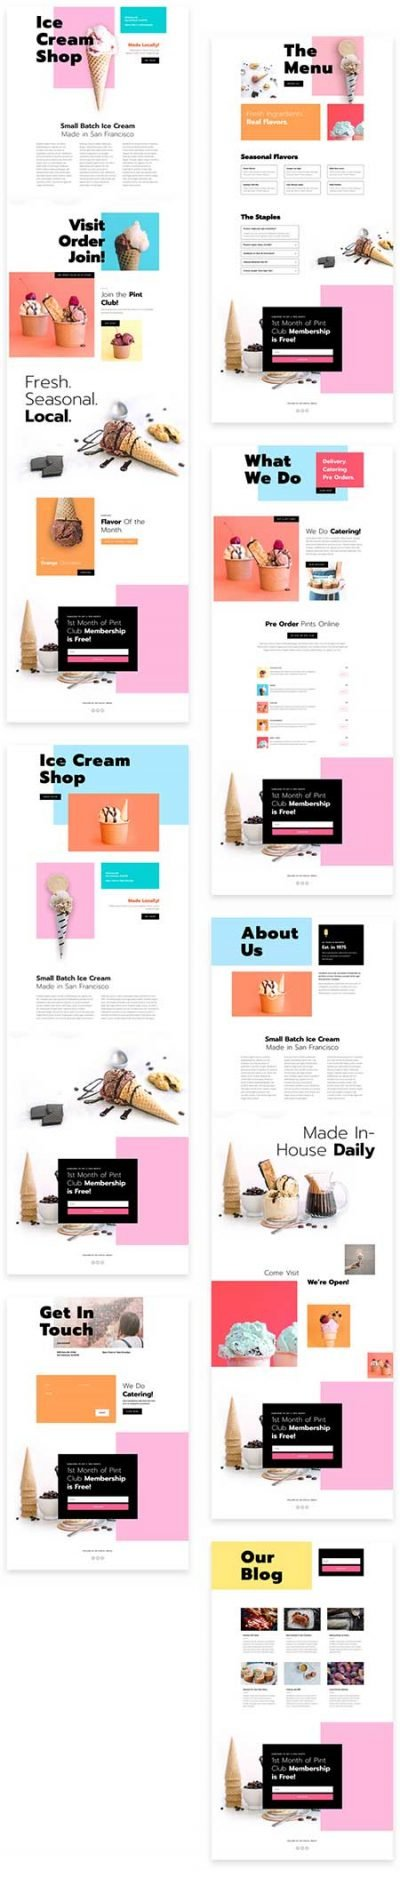 divi icecream shop template